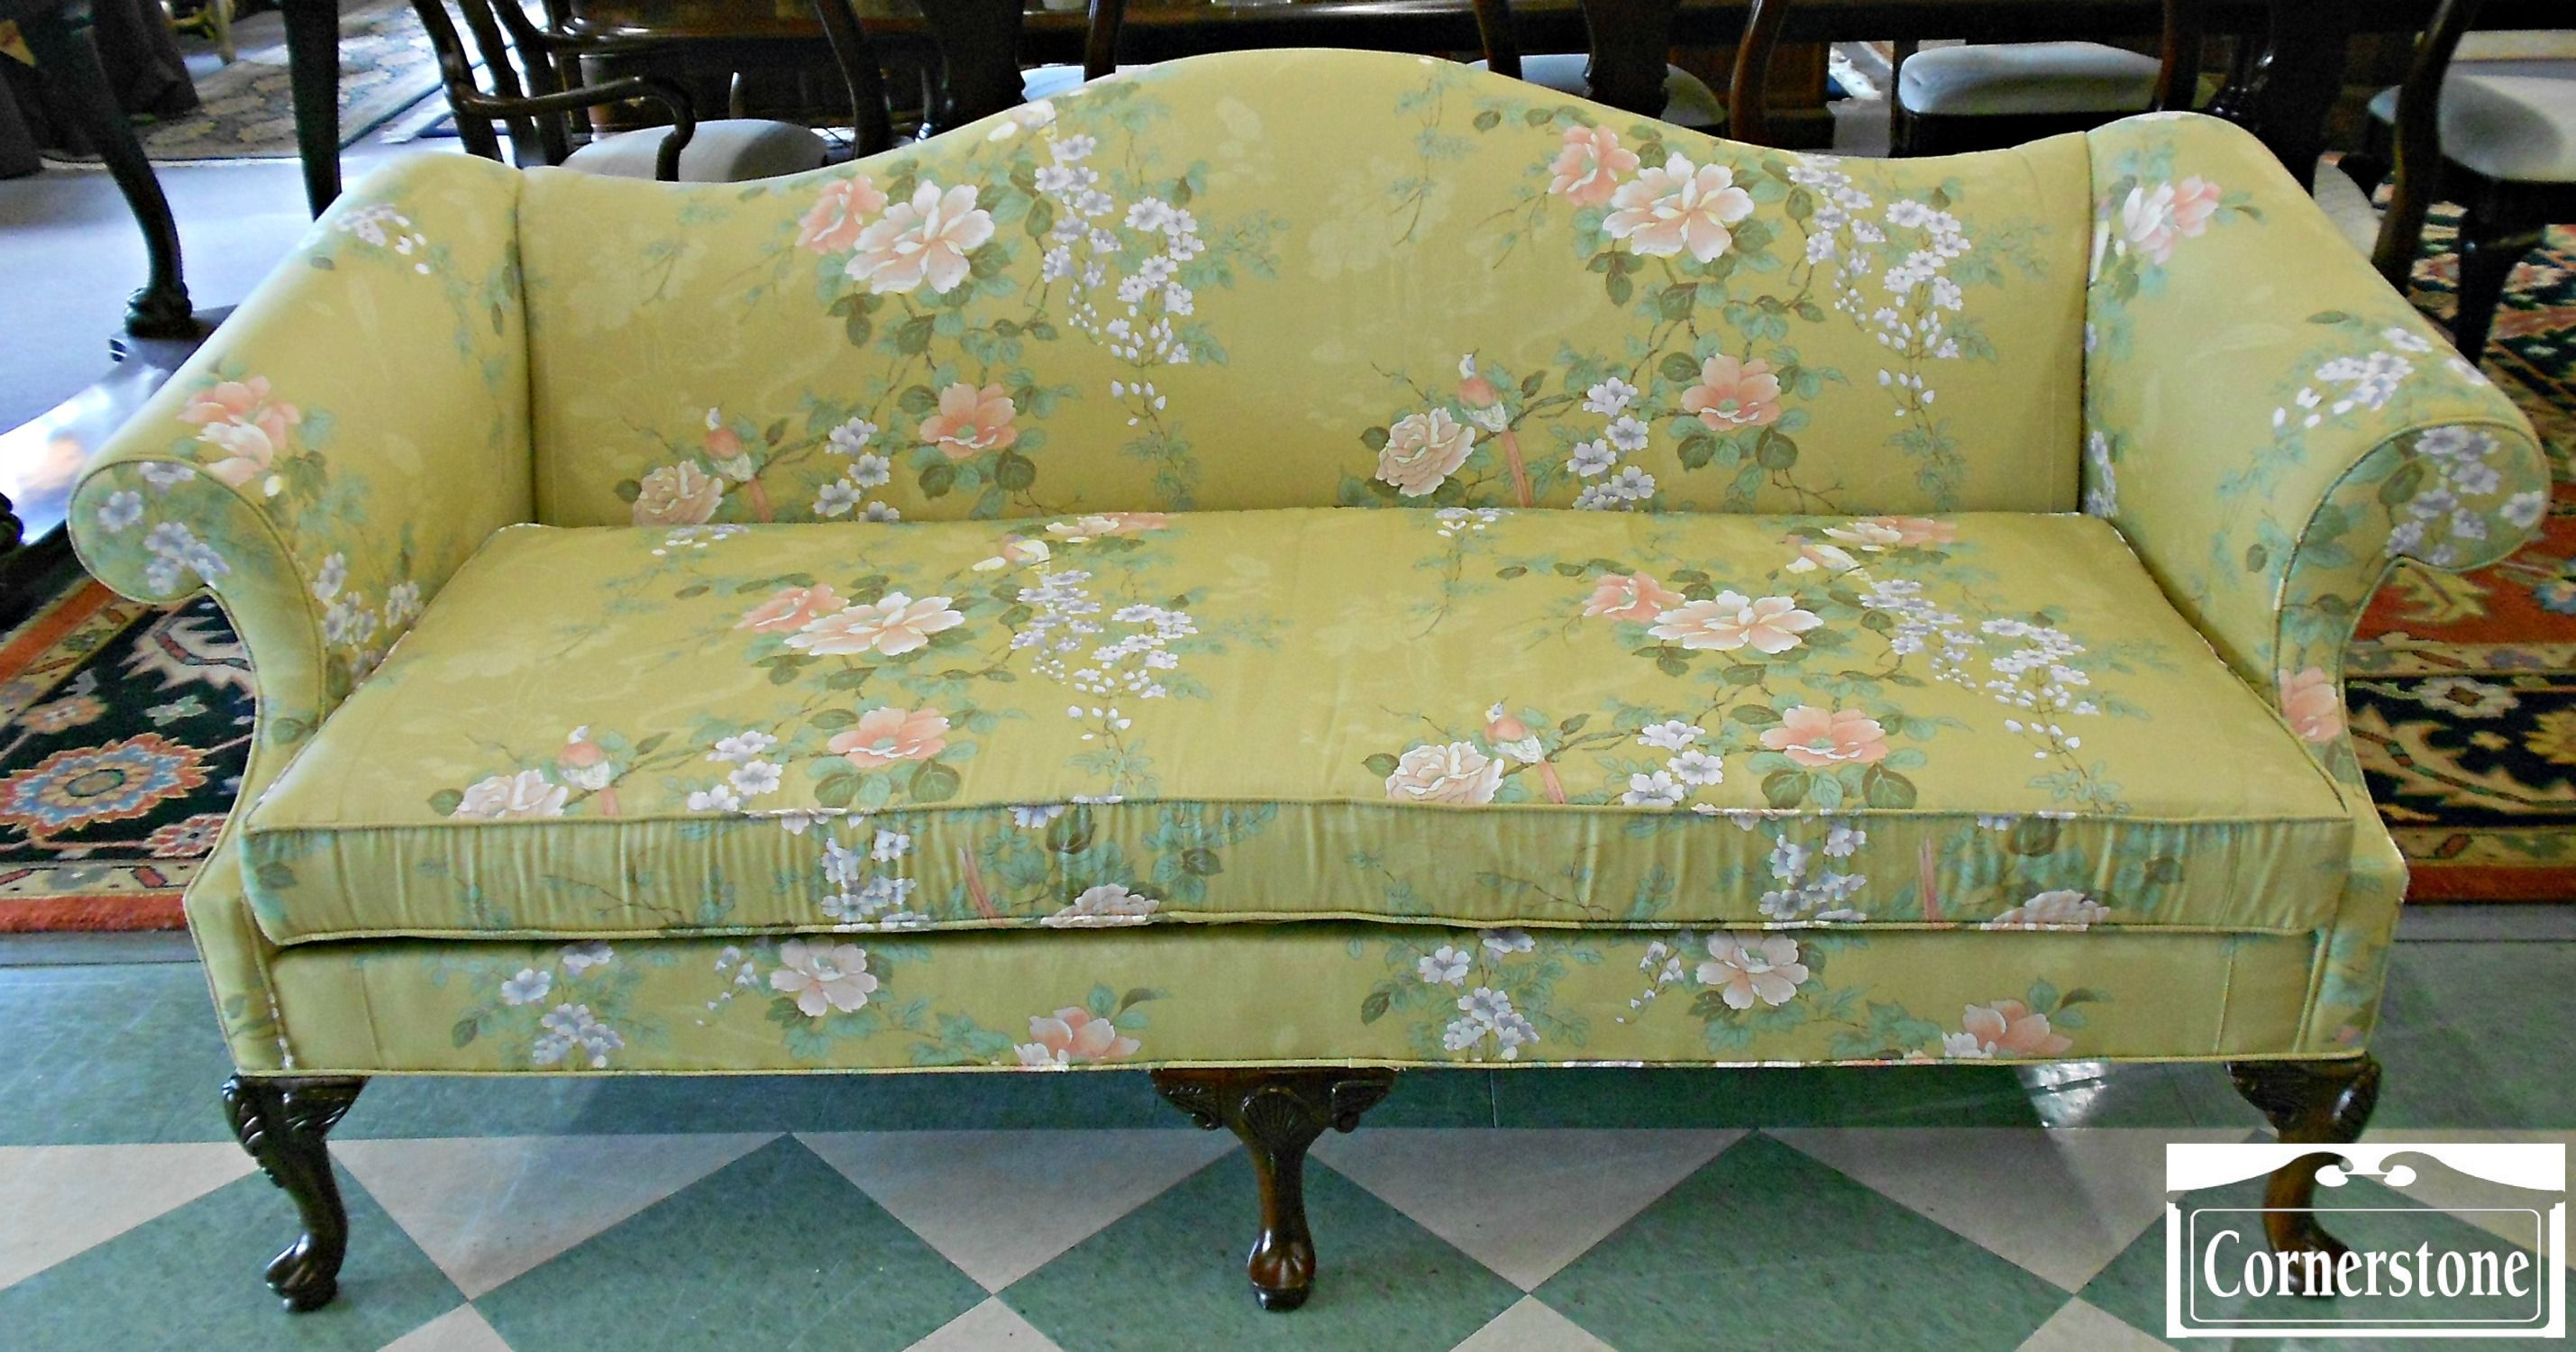 Sofa Queen Anne Queen Anne Camelback Sofa Slipcover Google Search Decor